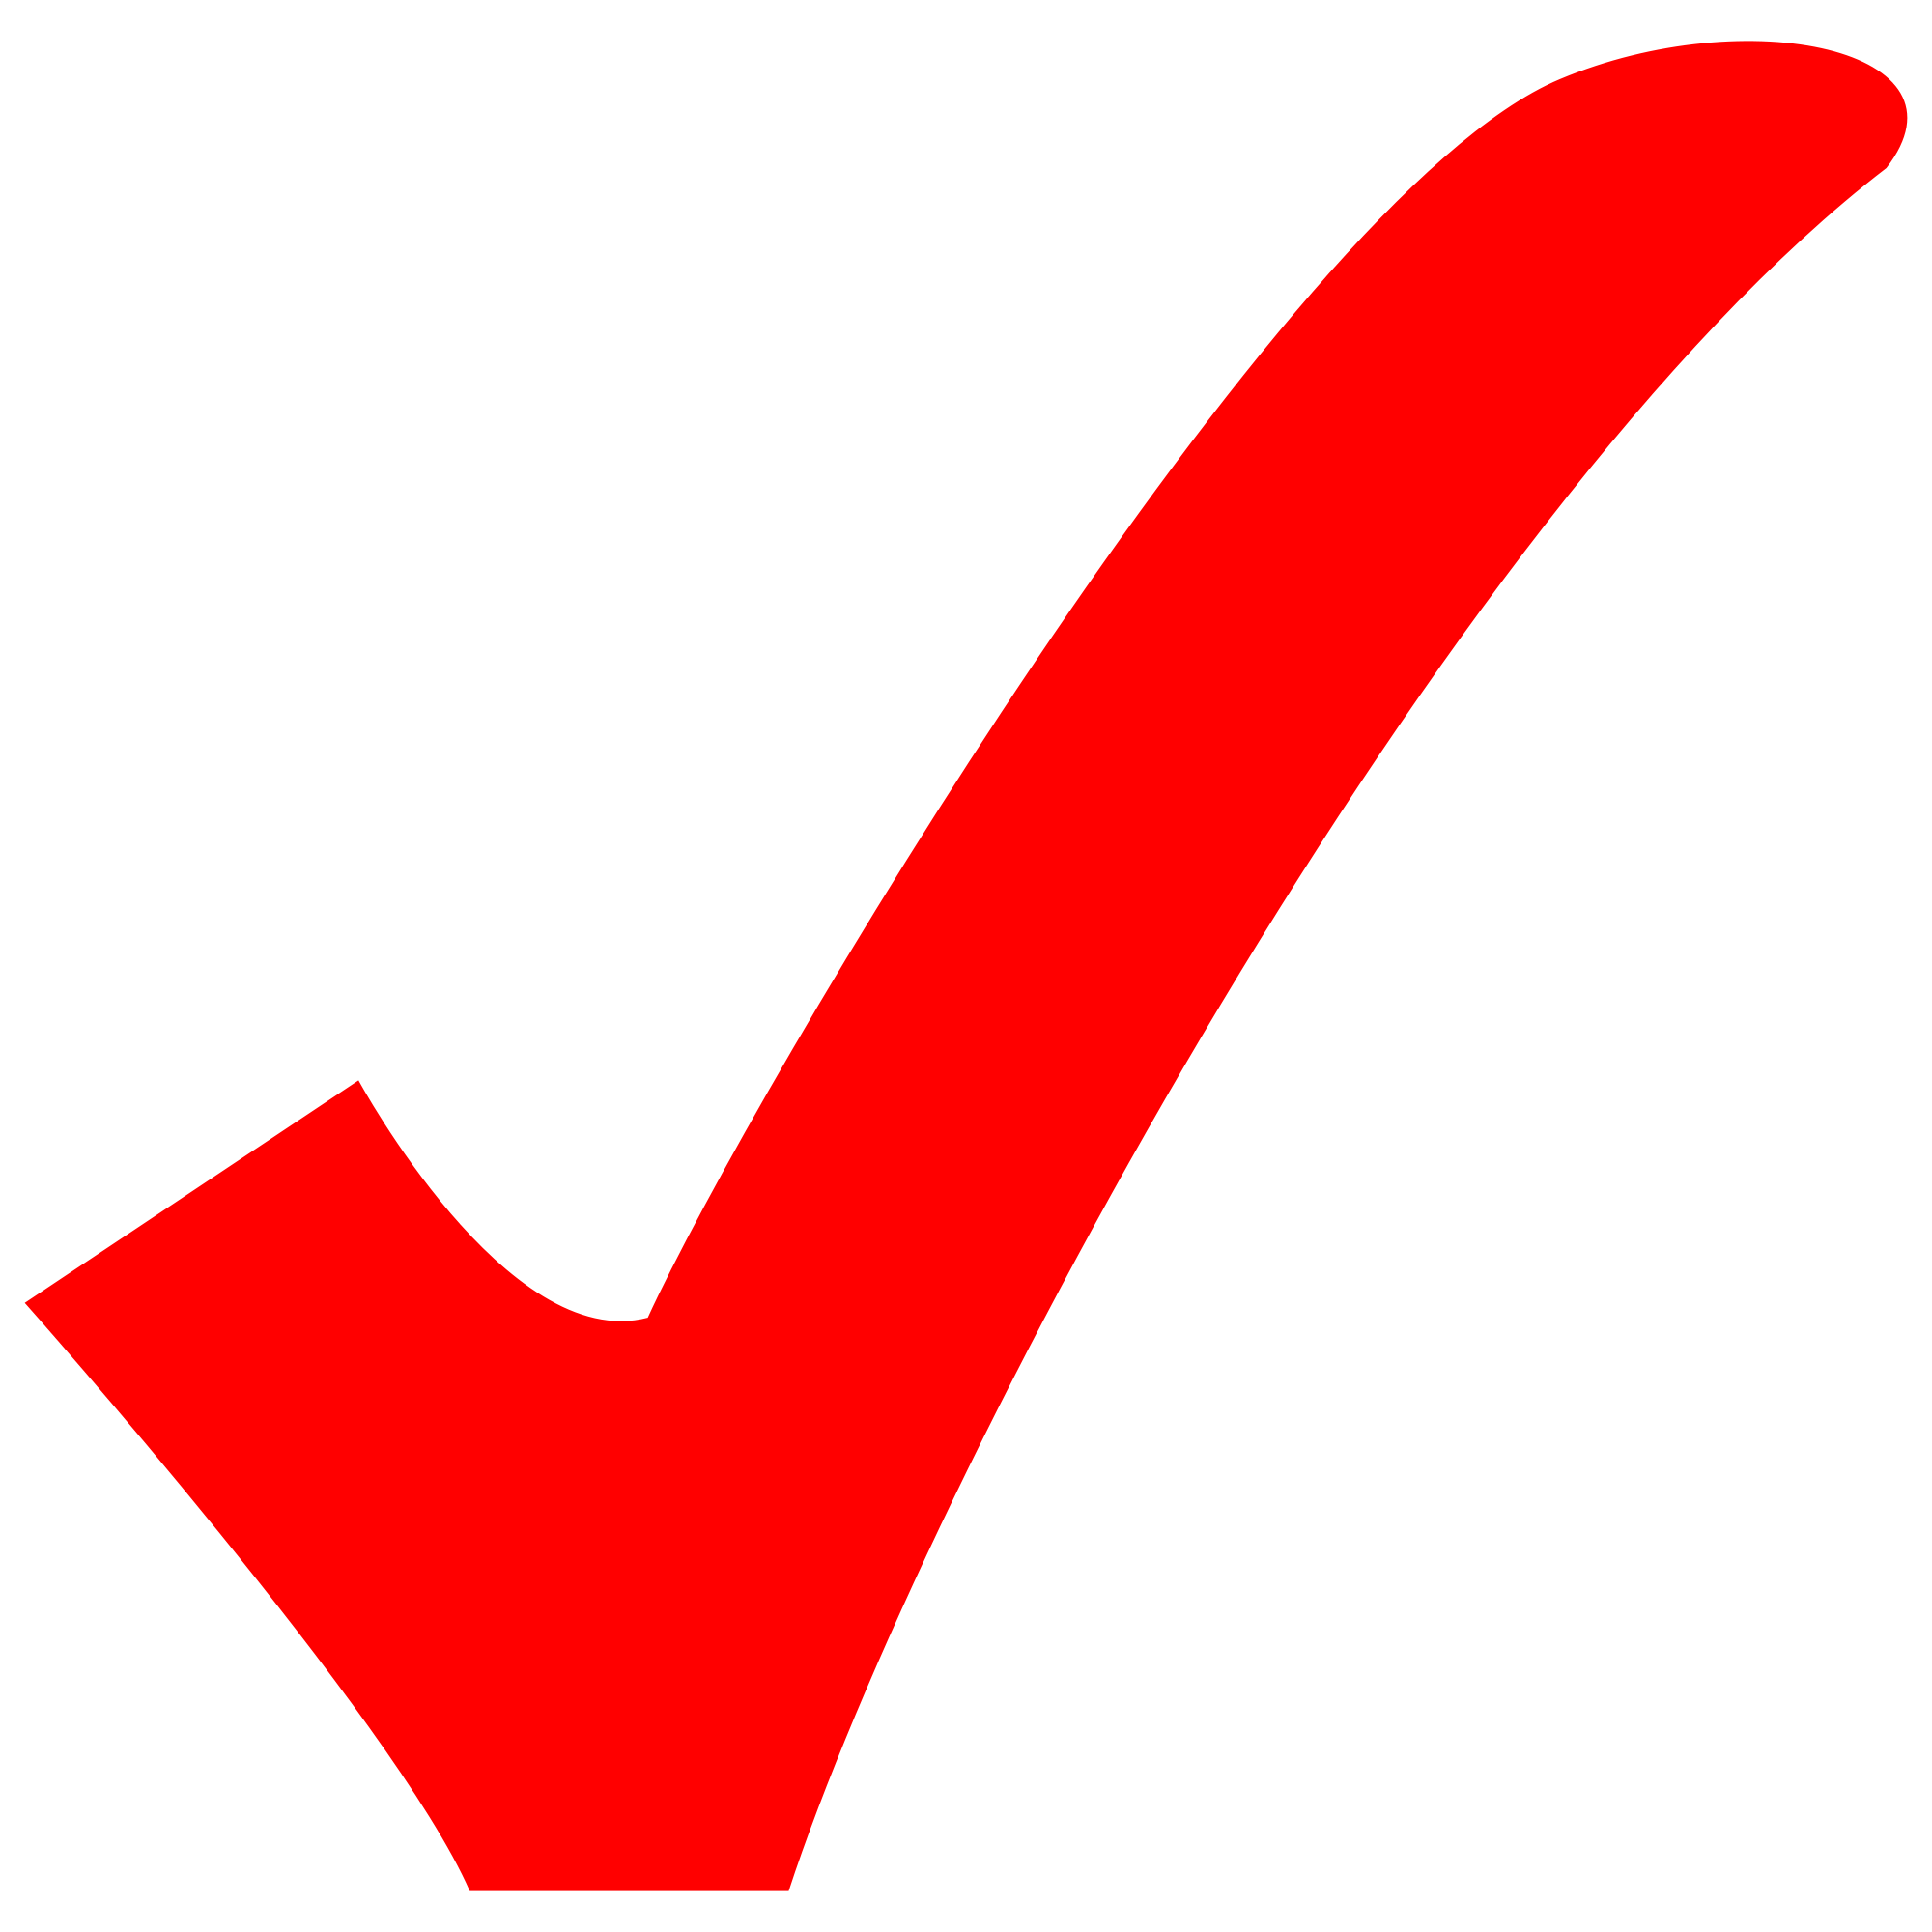 Checkmark svg red. File check wikimedia commons